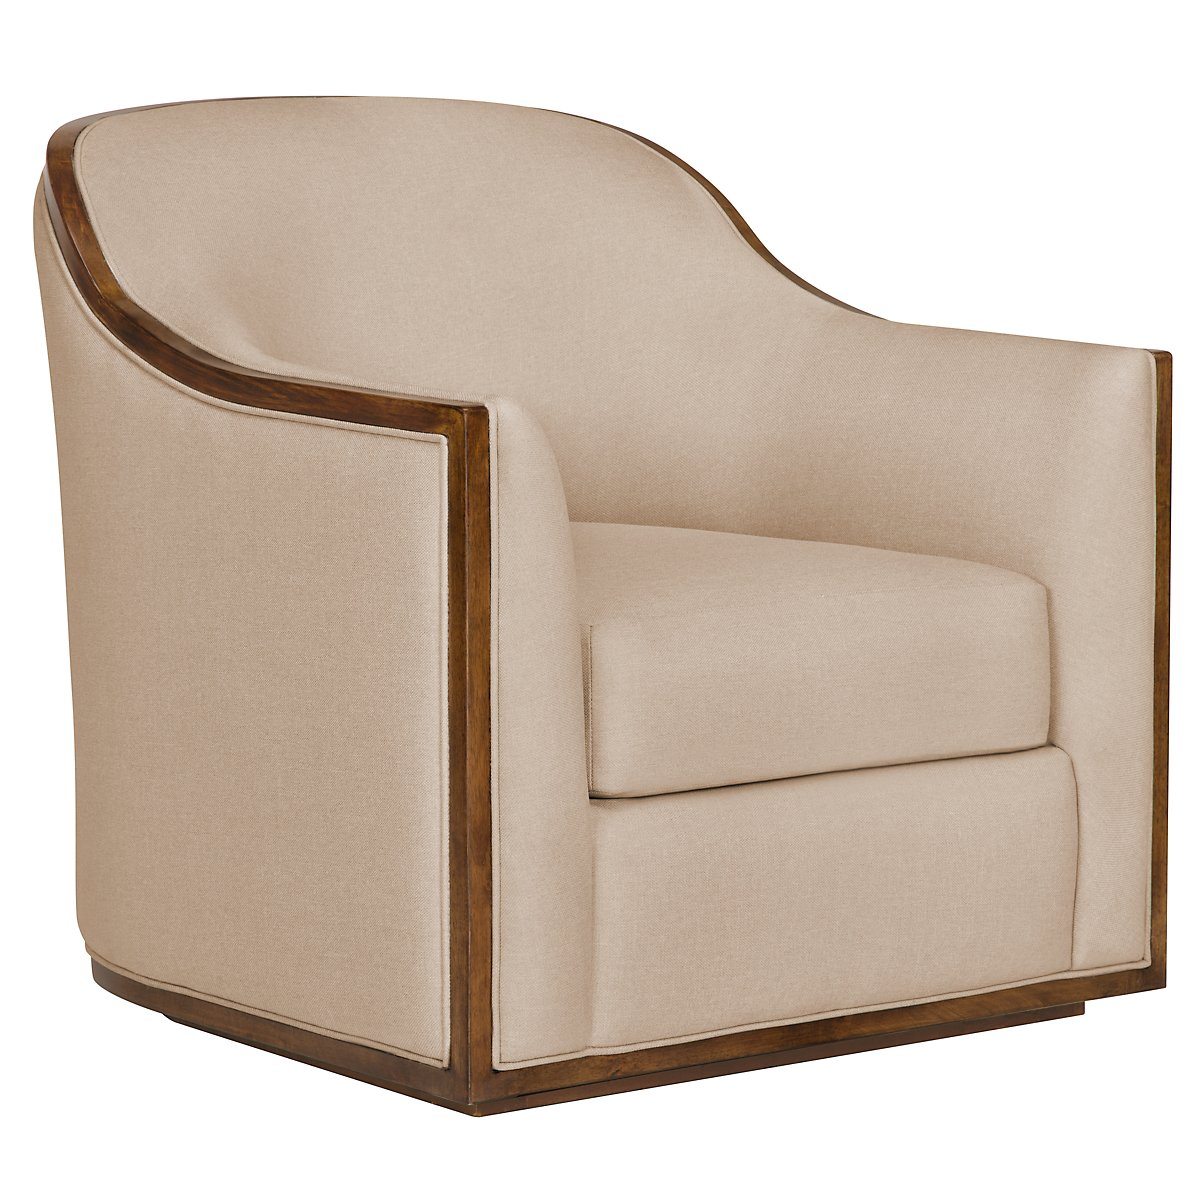 Savoy Mid Tone Accent Chair